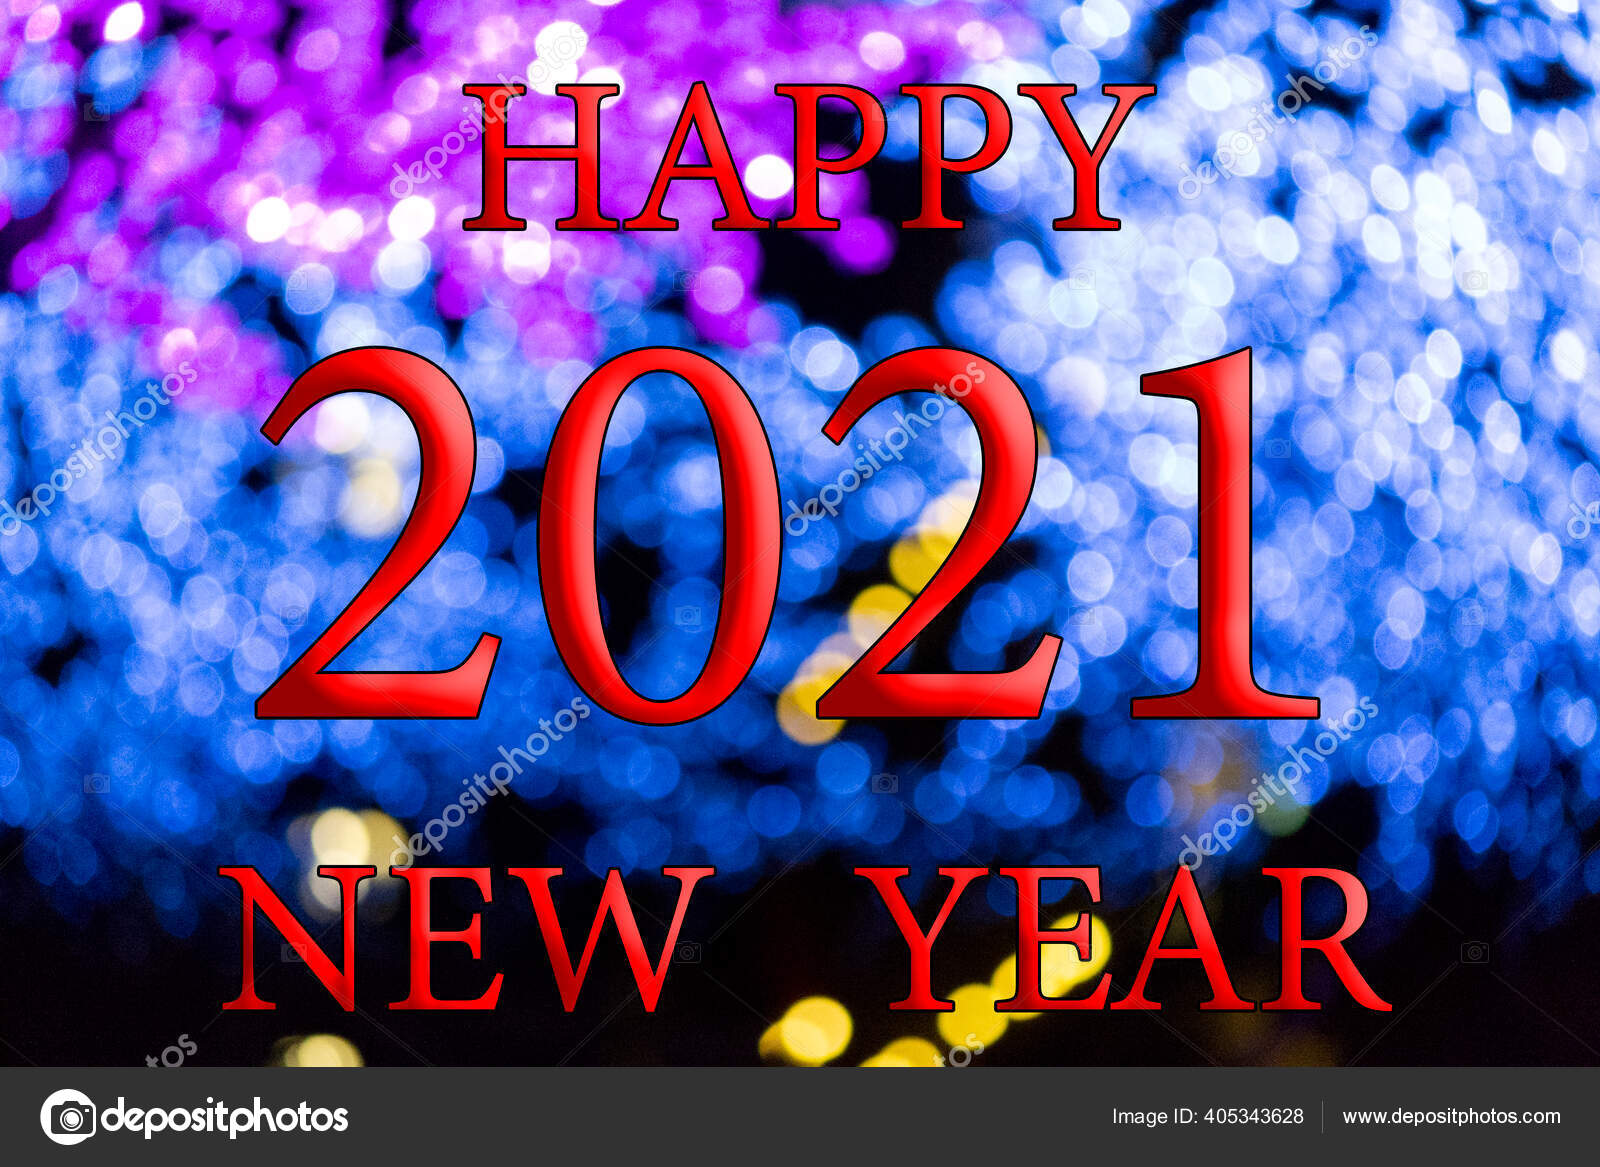 2021 Christmas Lights Happy New Year 2021 Background Bokeh Effect Christmas Lights Different Stock Photo Image By C Ferdel99 405343628